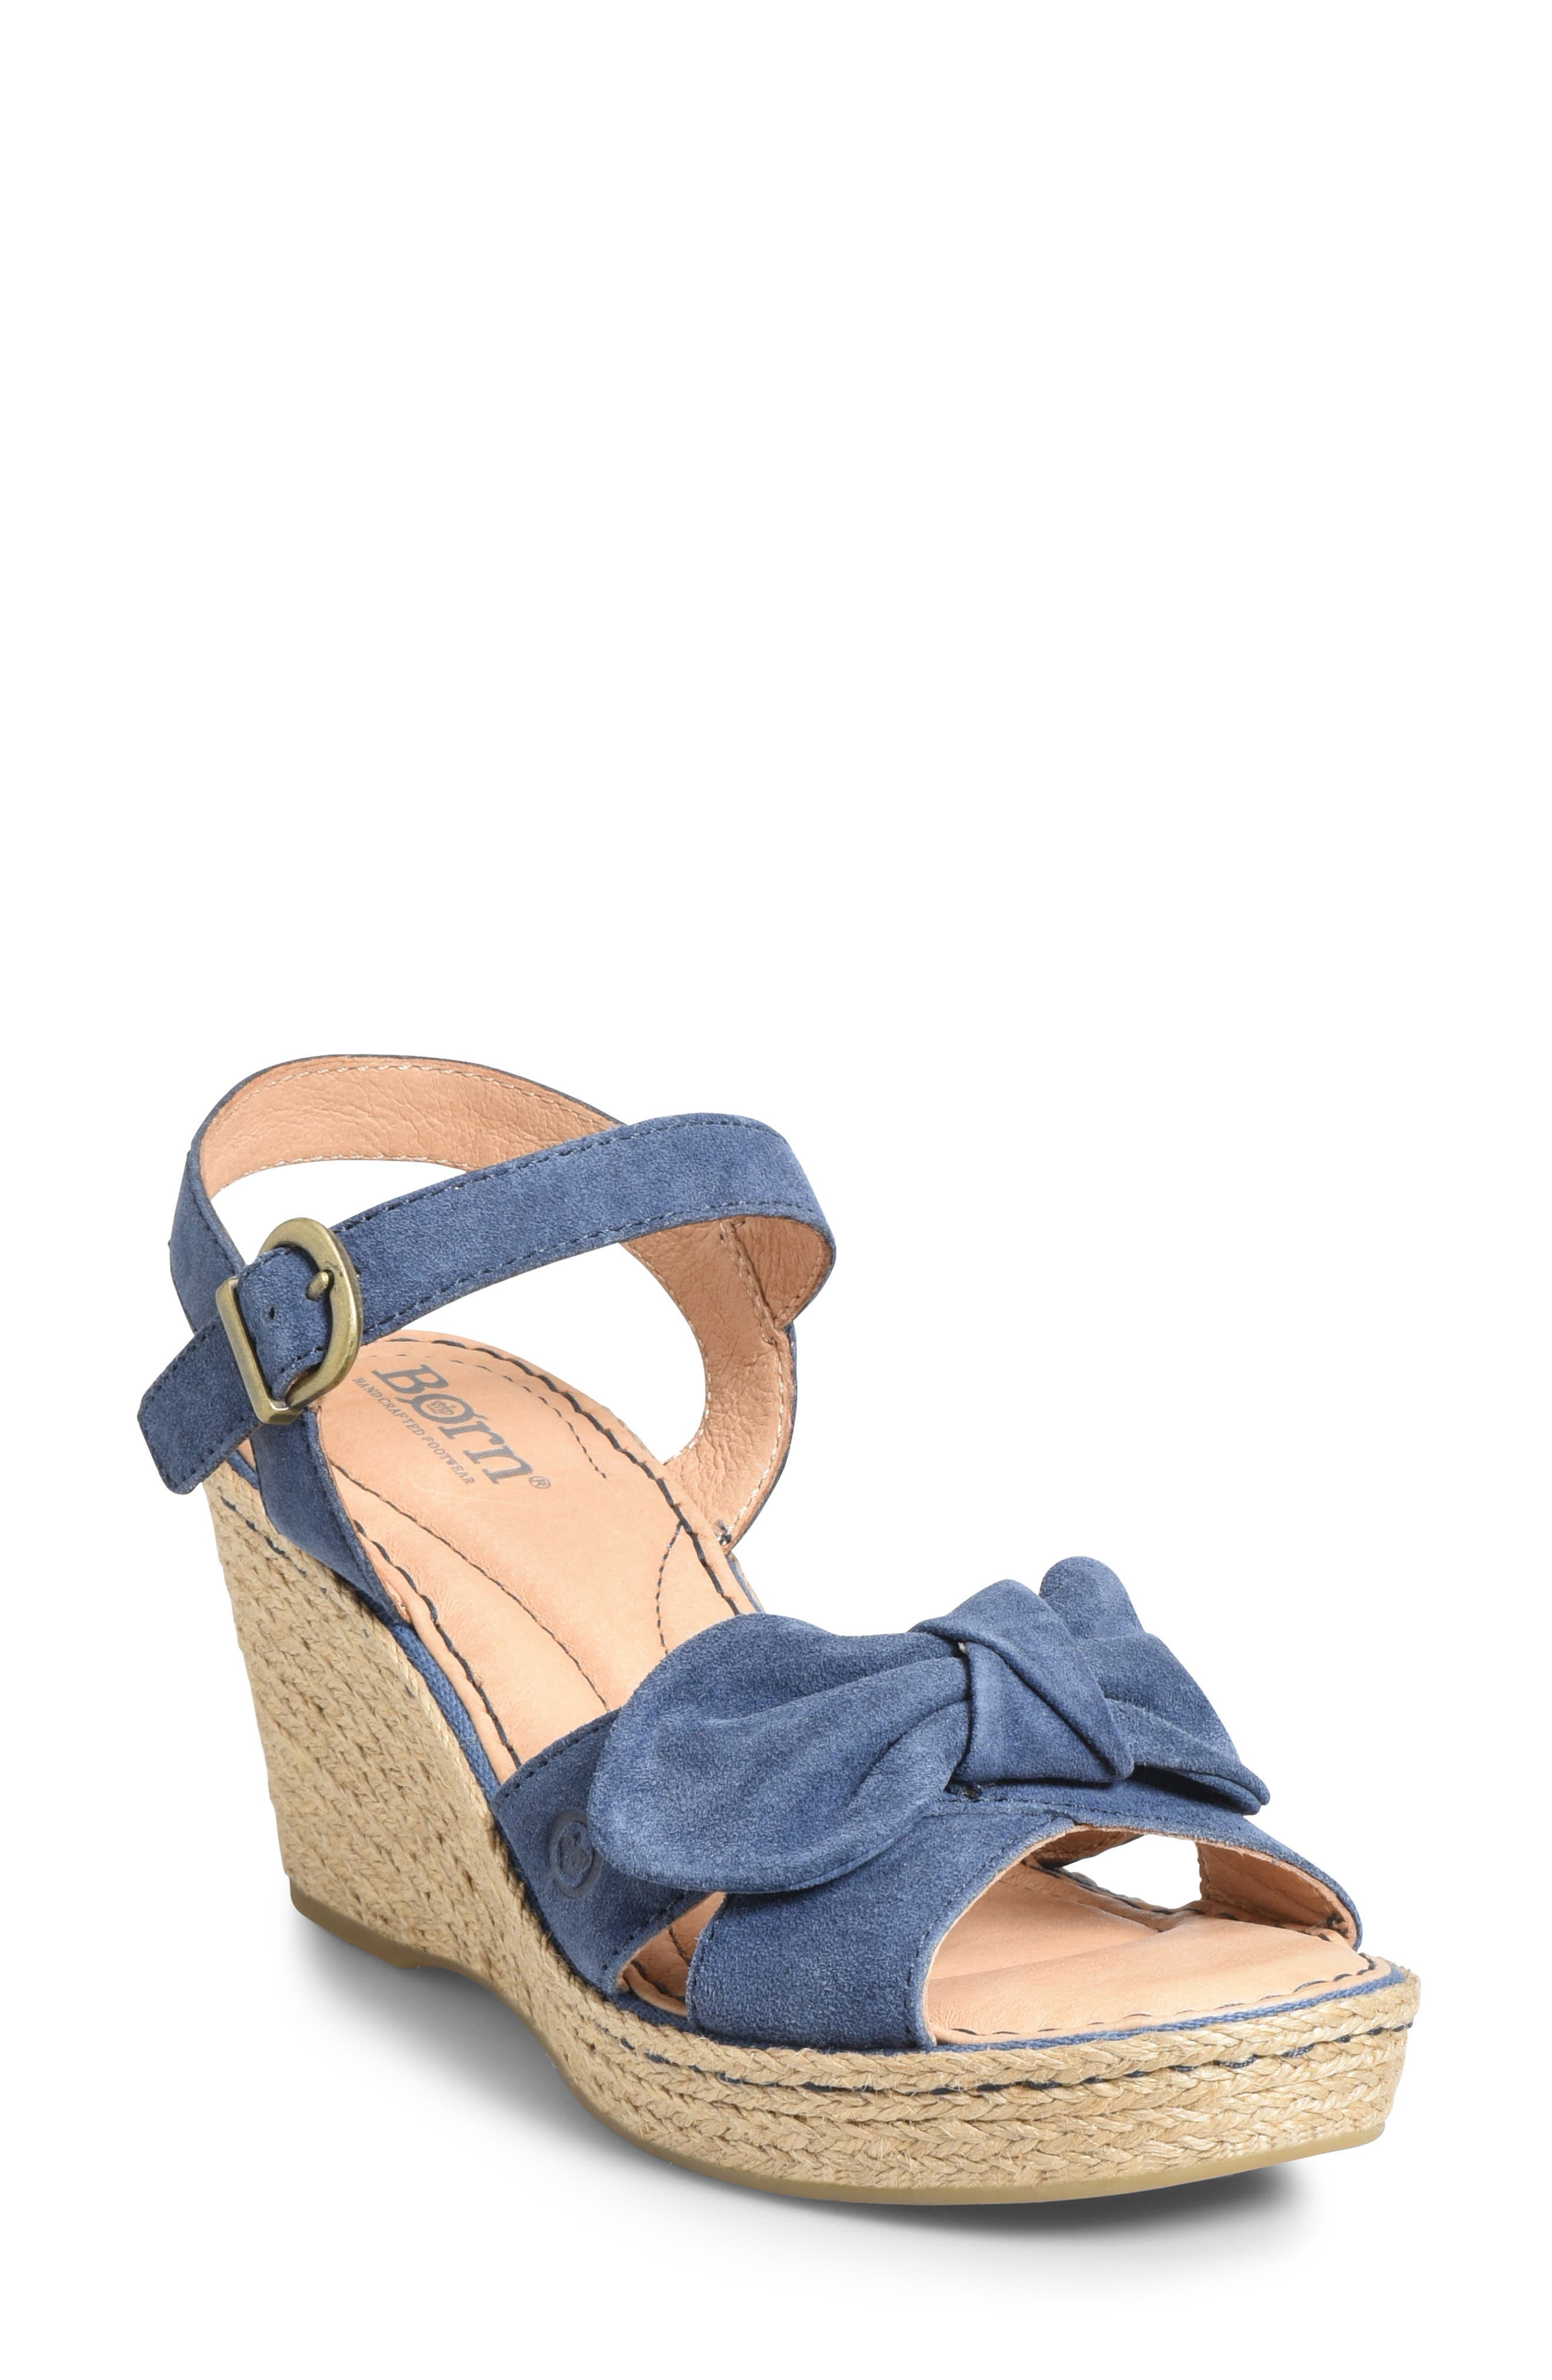 B?rn Monticello Knotted Wedge Sandal, Blue